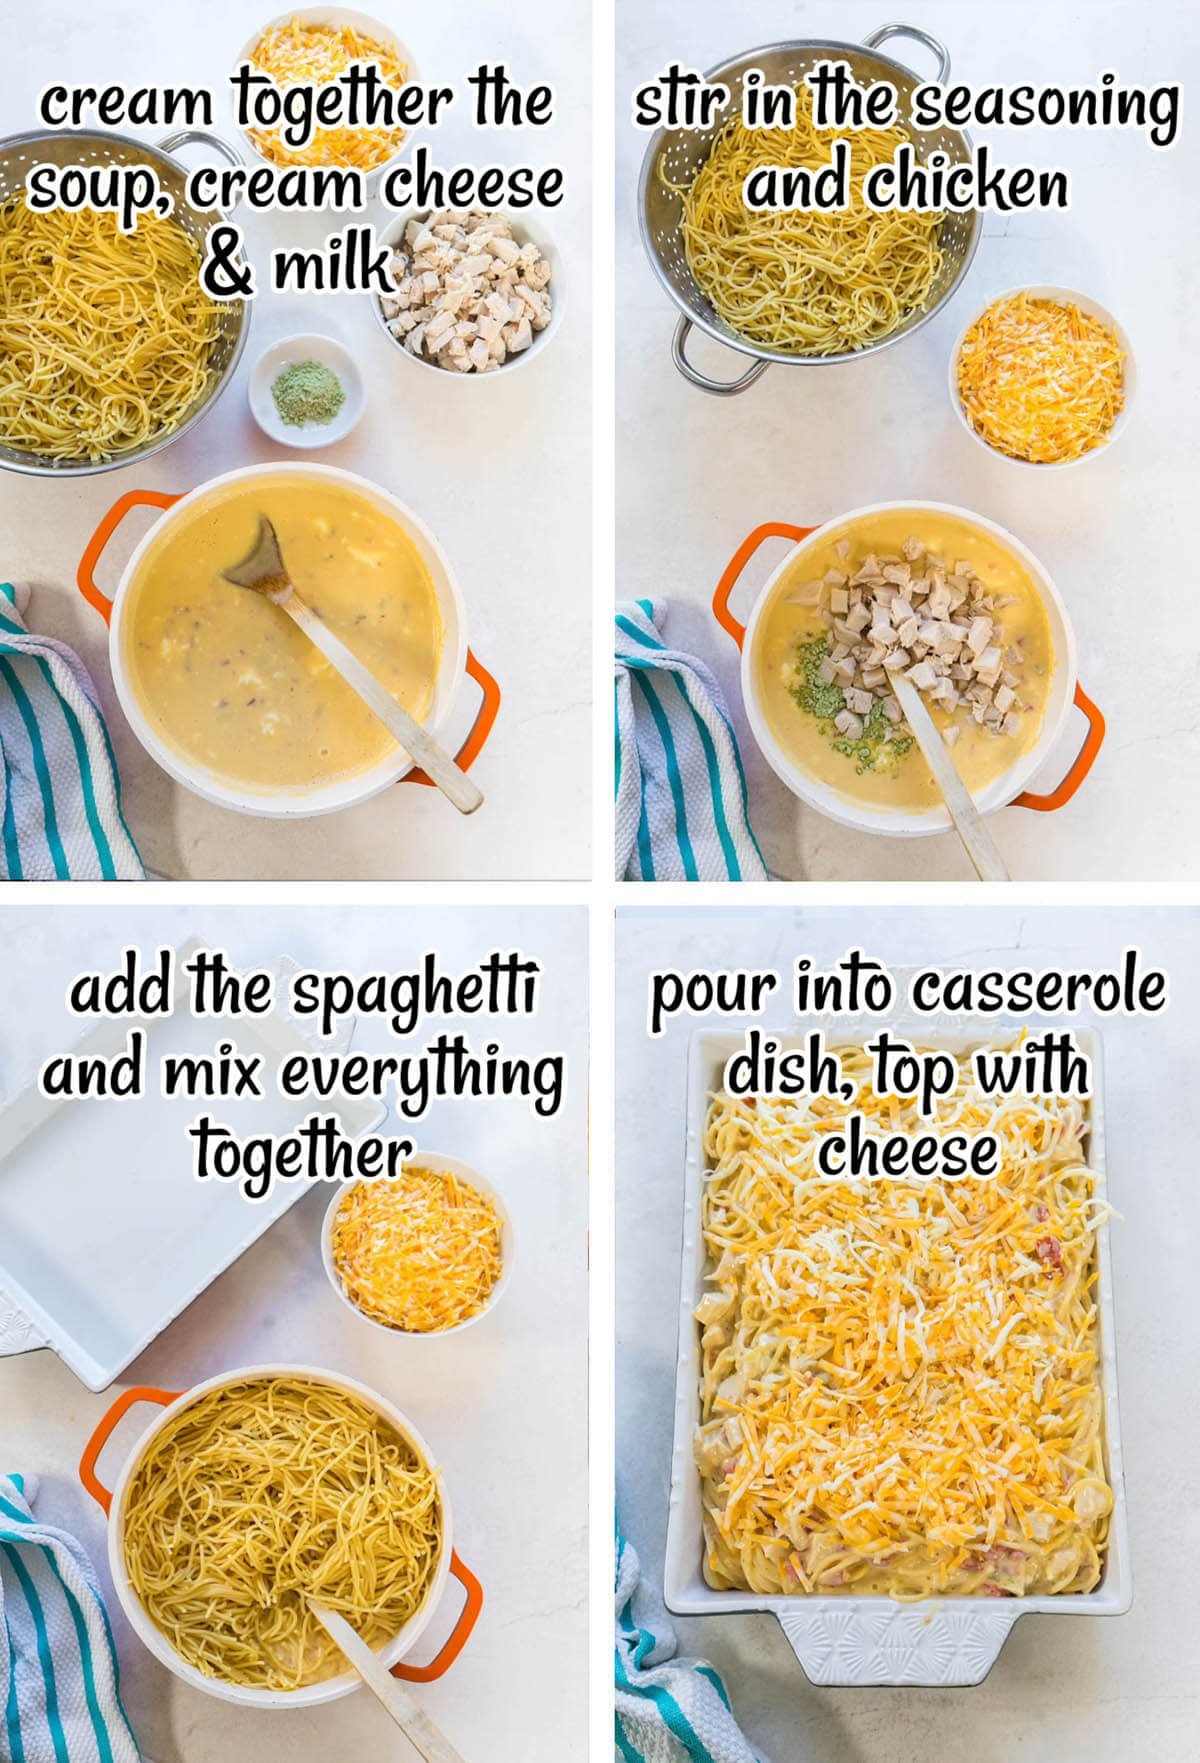 Step by step photos showing how to make spicy chicken pasta.